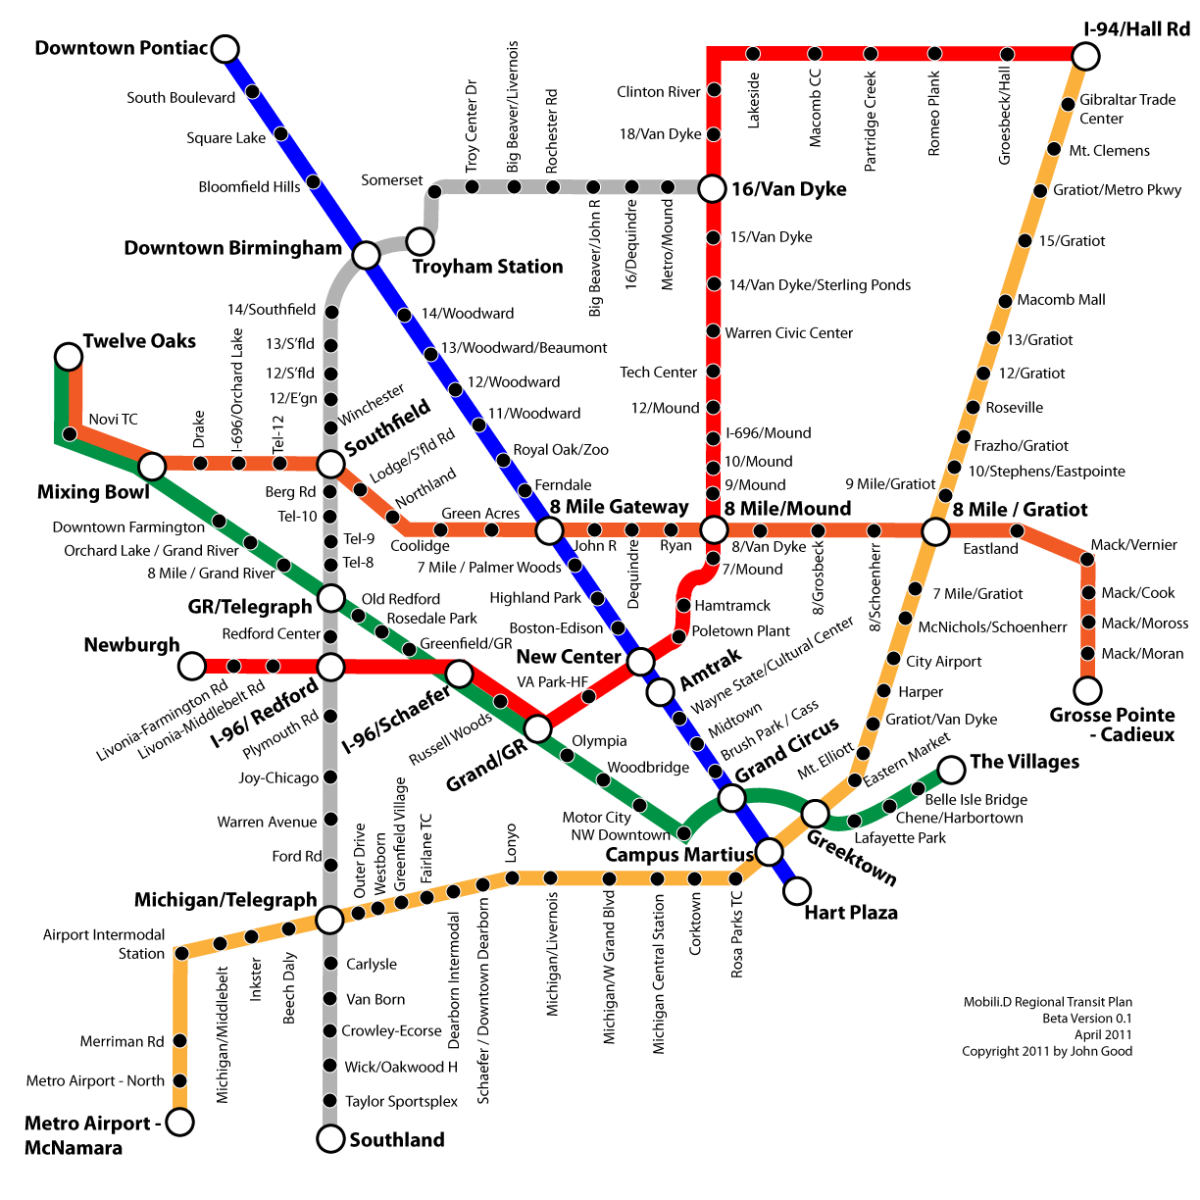 Detroit Regional Mass Transit Map 2011